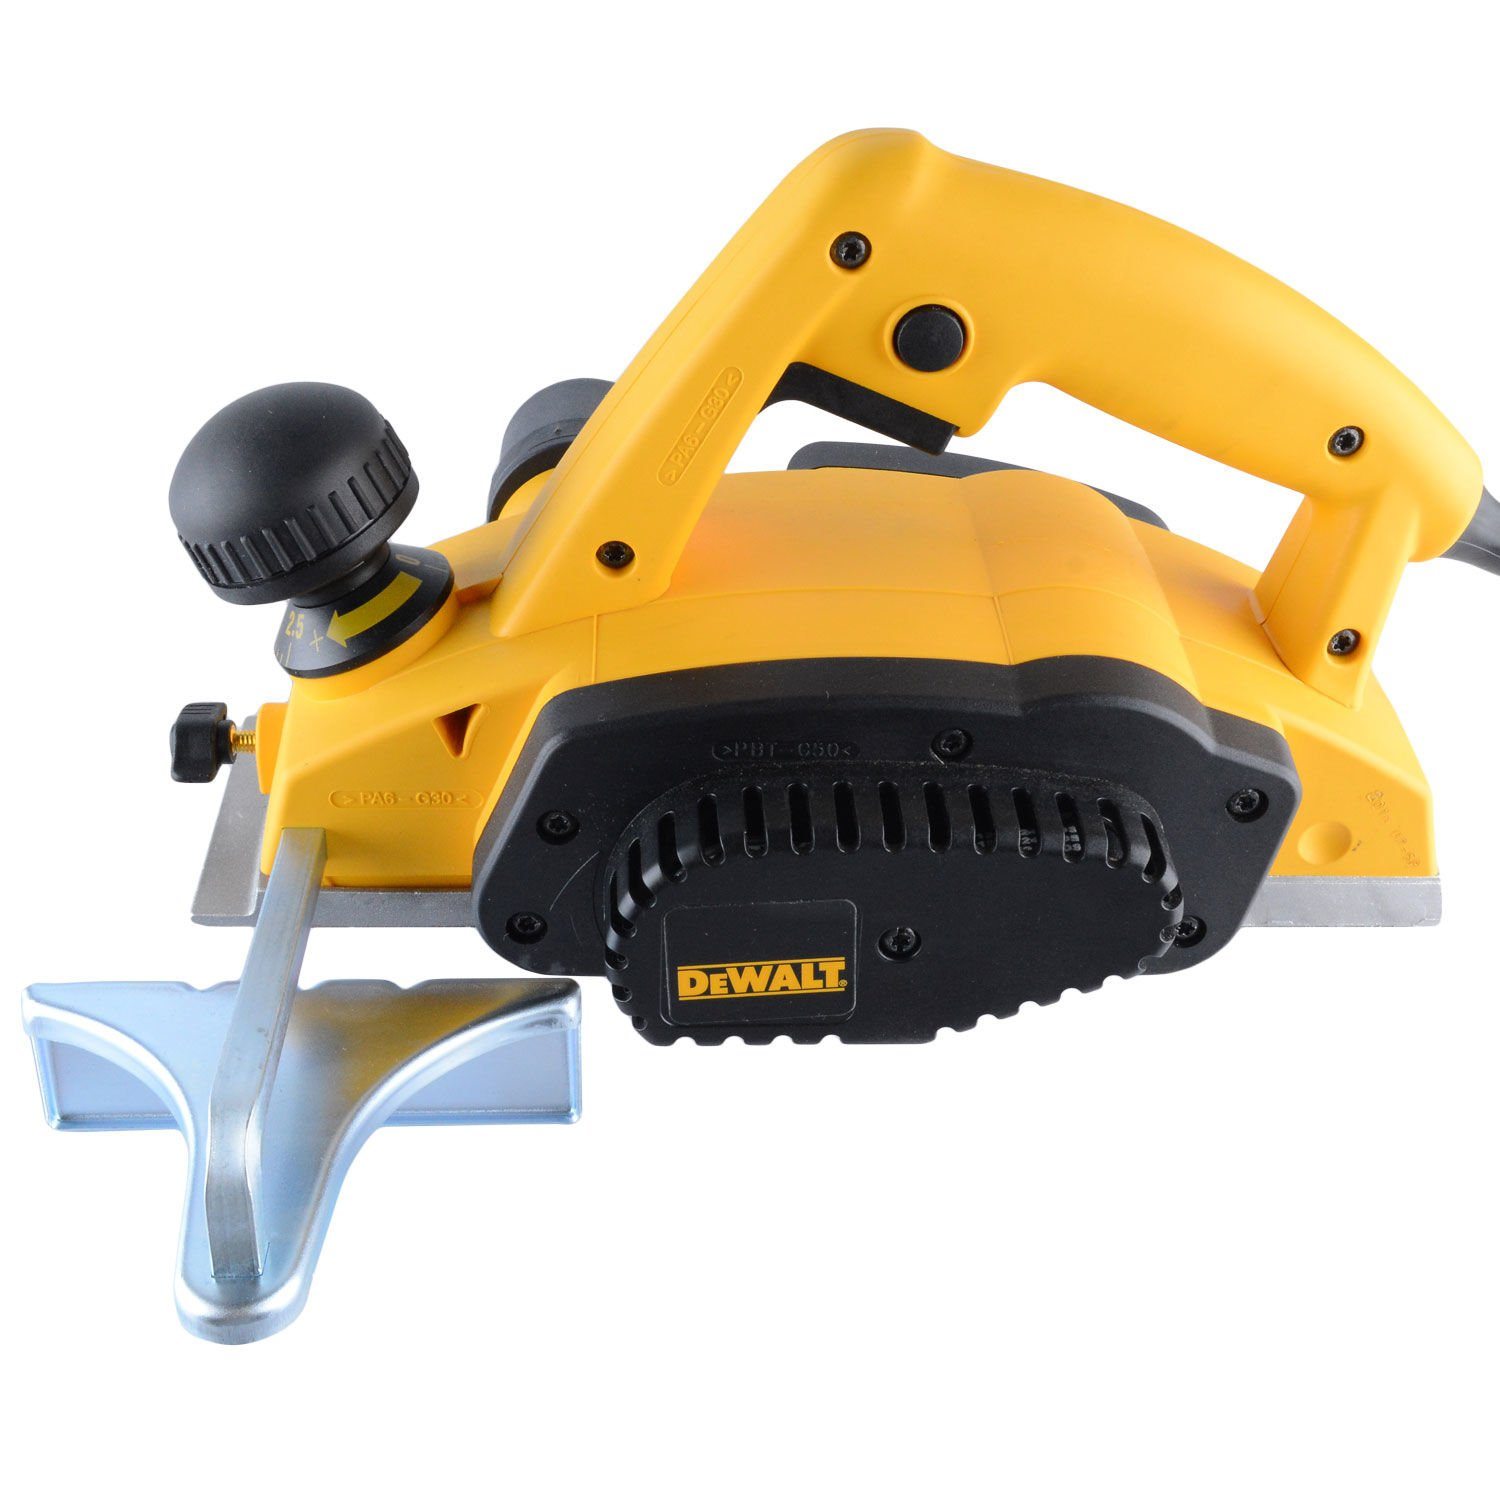 Plaina Elétrica DW680 DeWALT - 2,5 mm, 600 Watts, 127 Volts